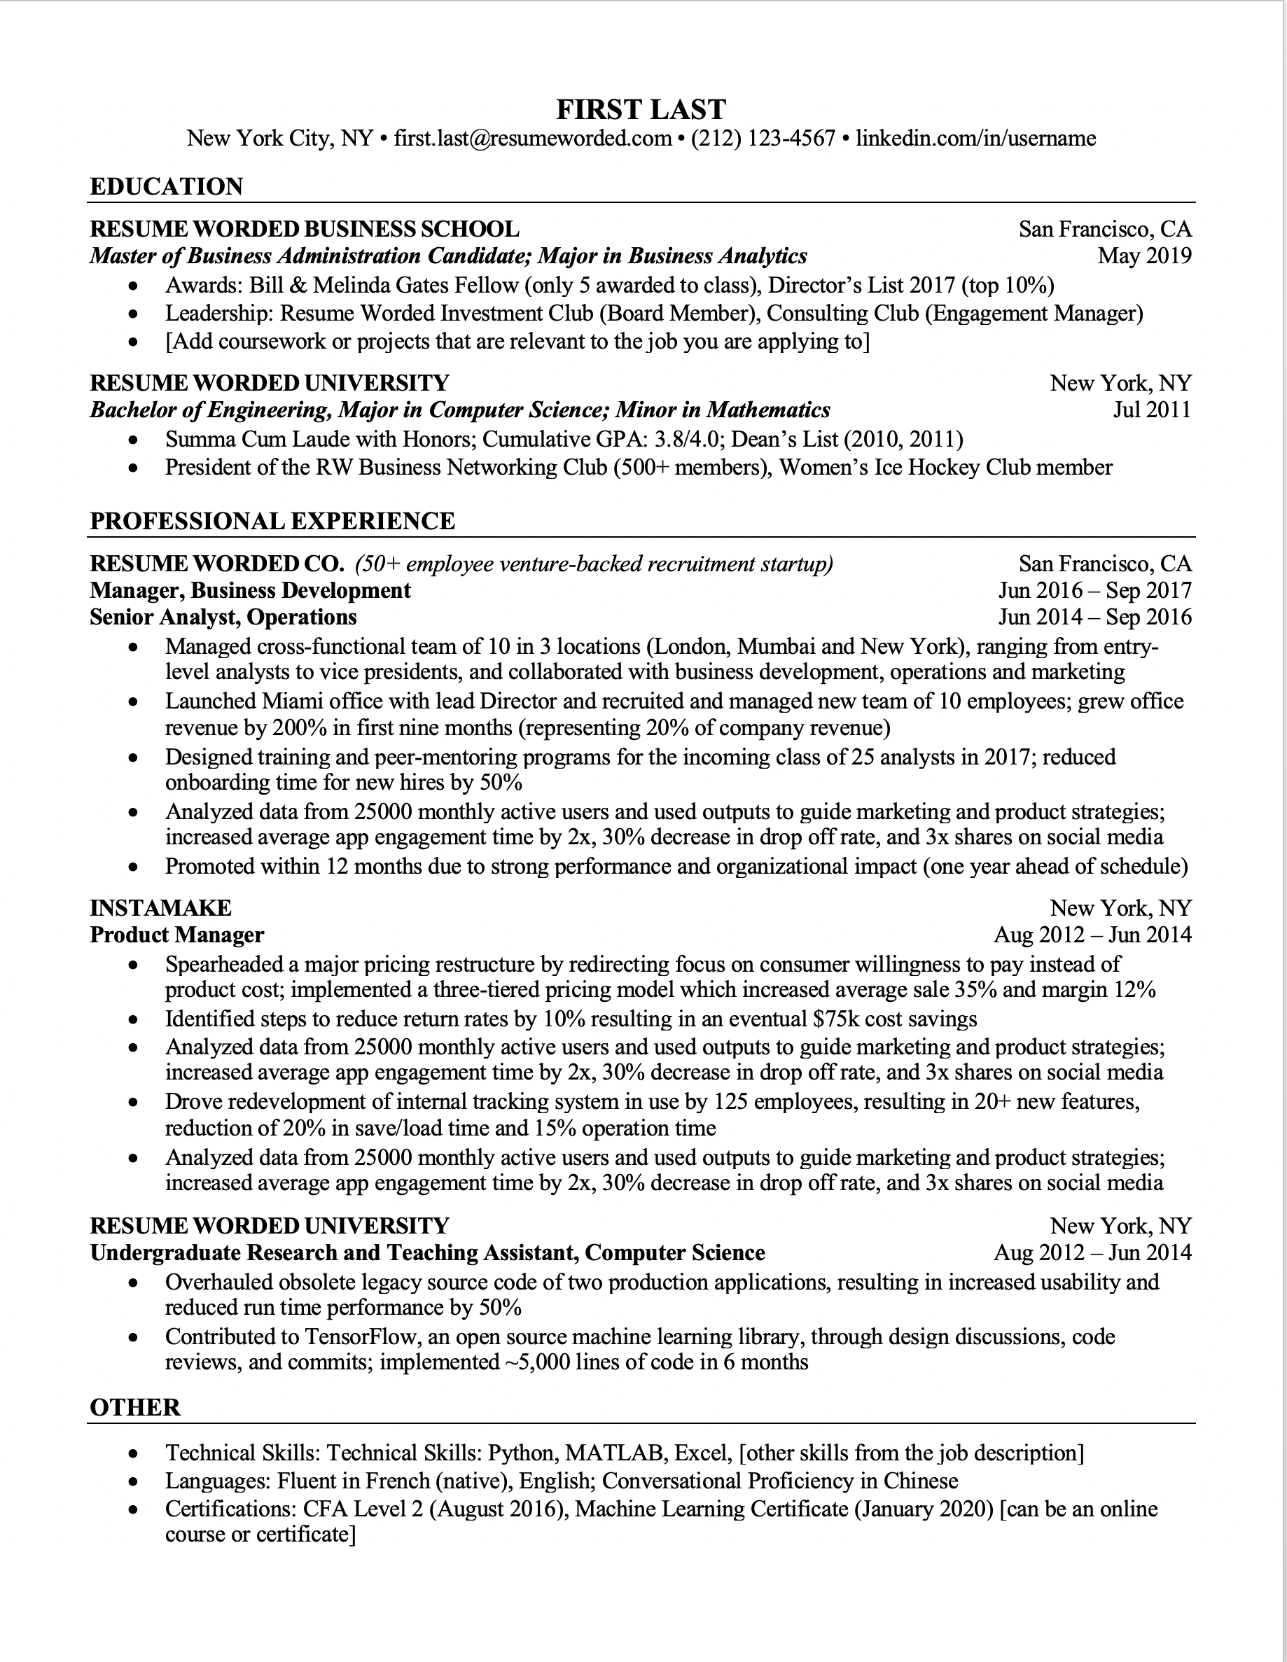 Professional Ats Resume Templates For Experienced Hires And College Students Or Grads For Free Updated For 2020